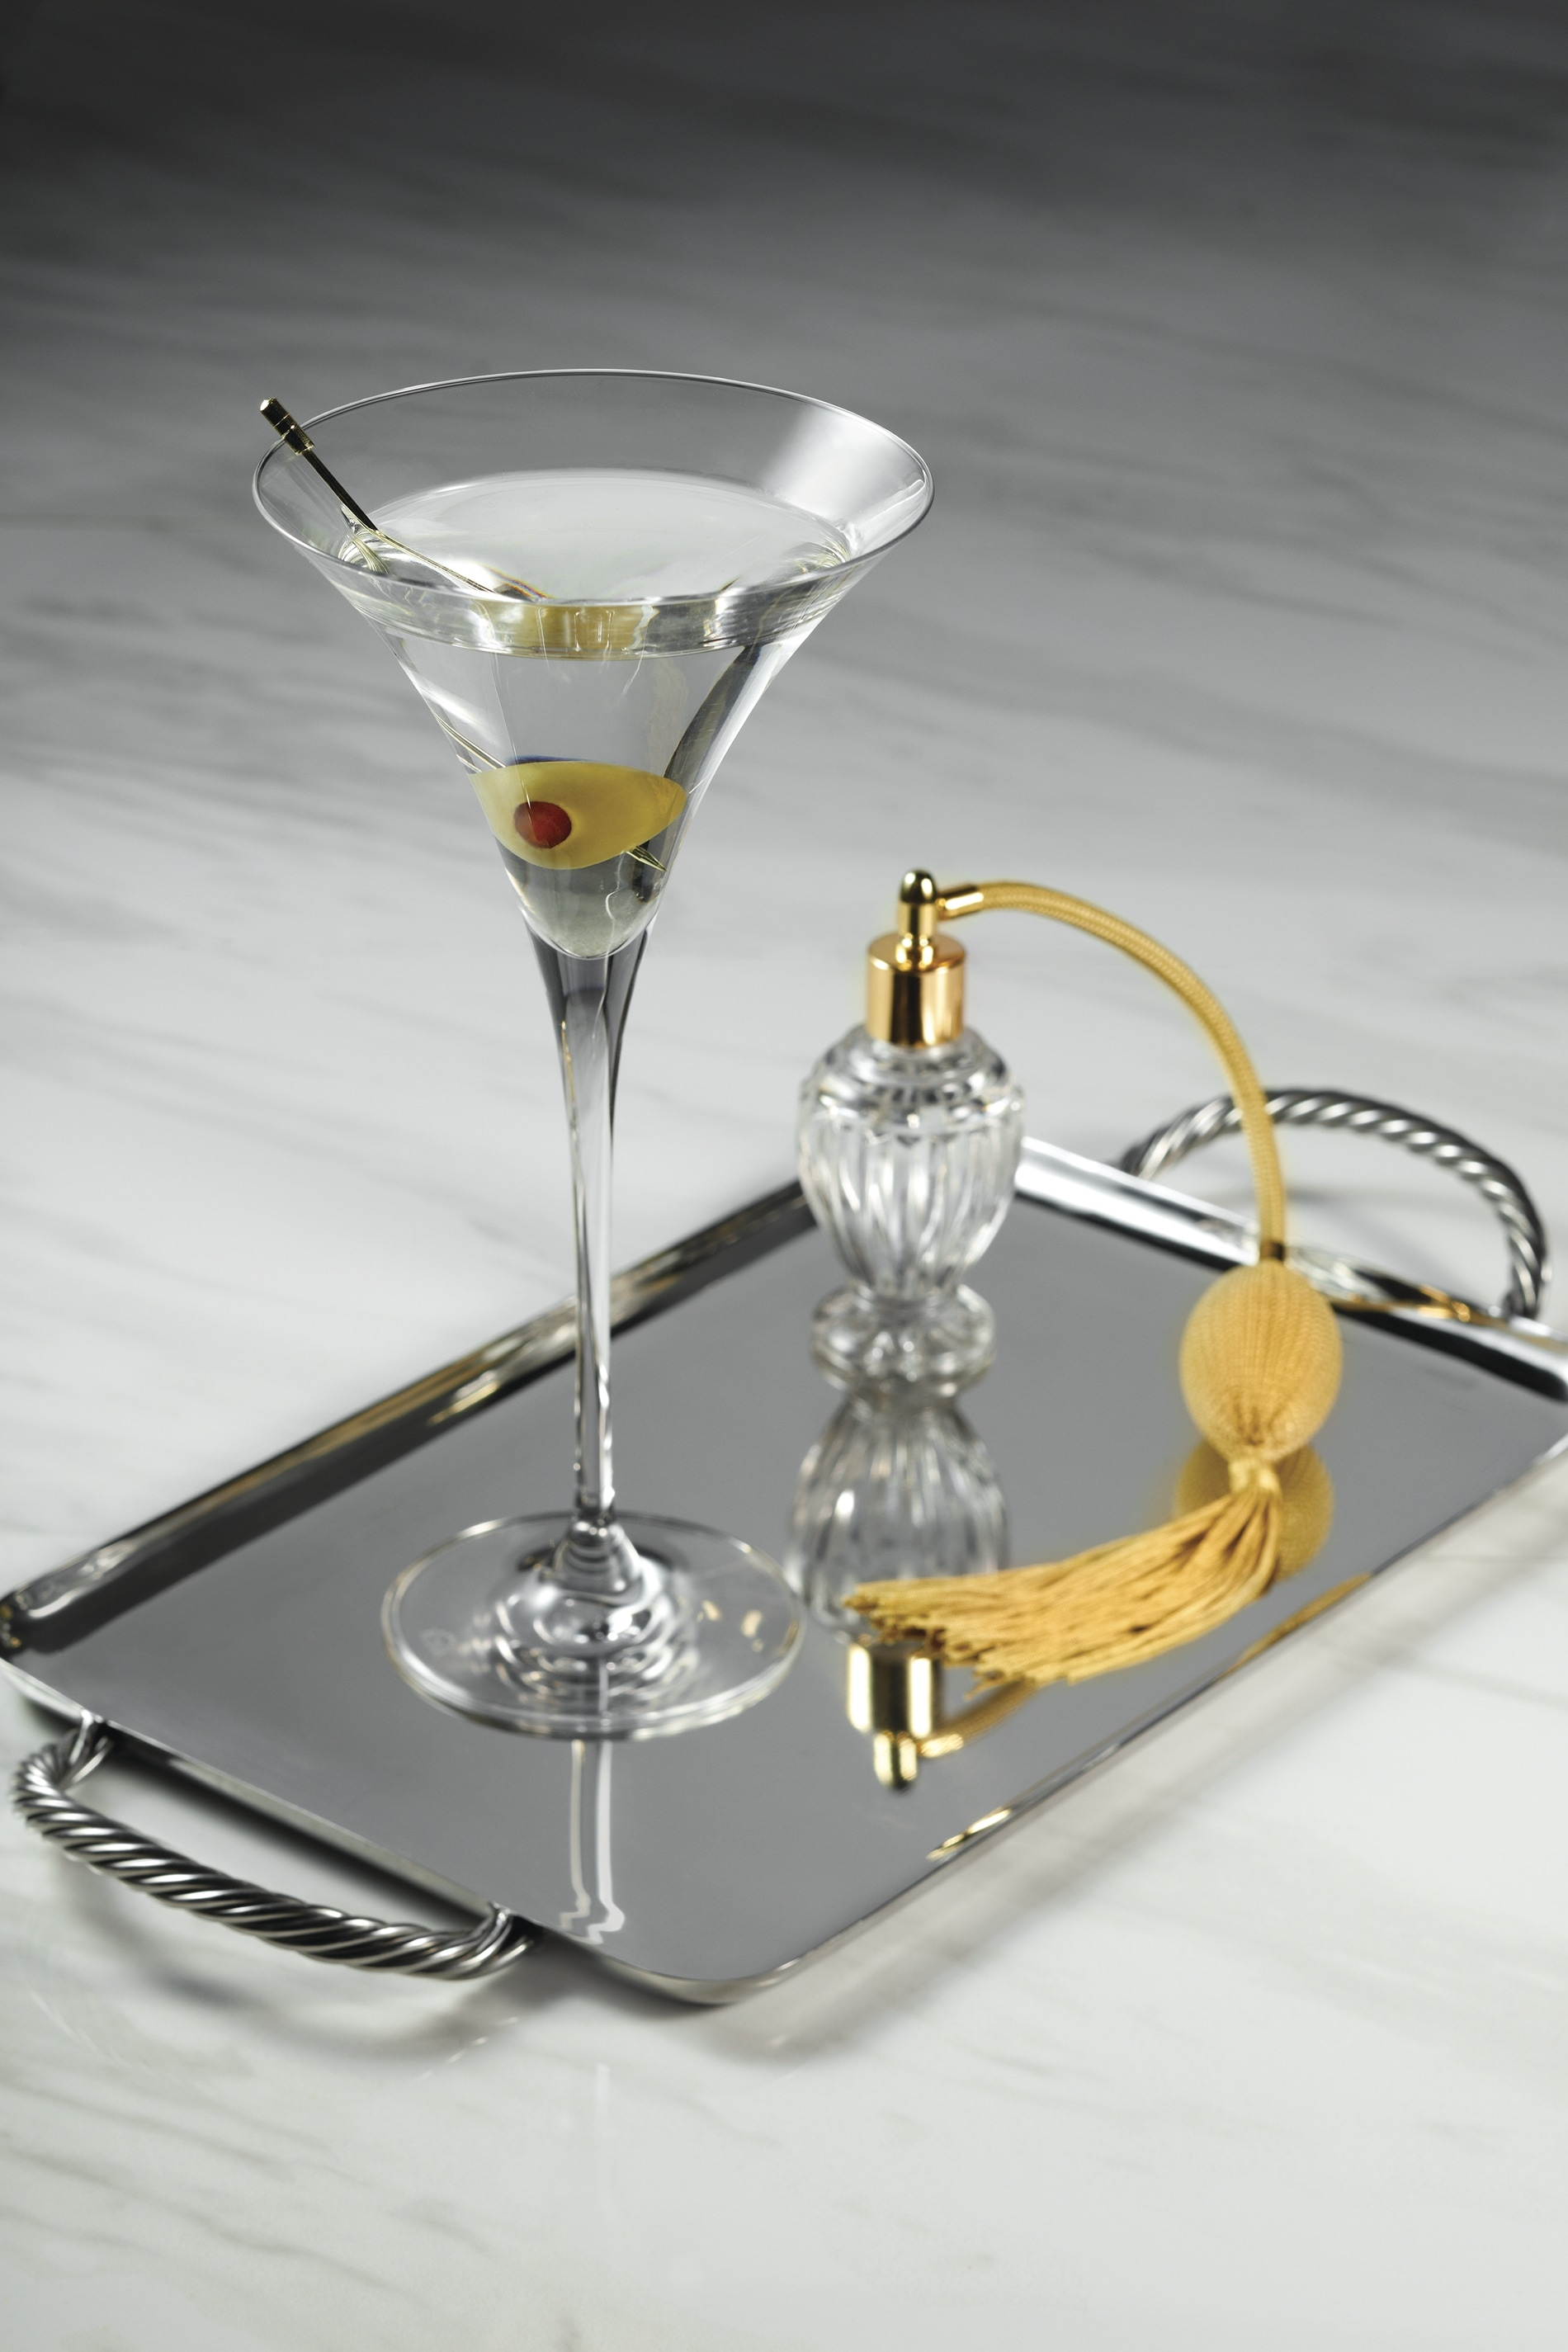 05_r1_Martini_Cocktai.jpg